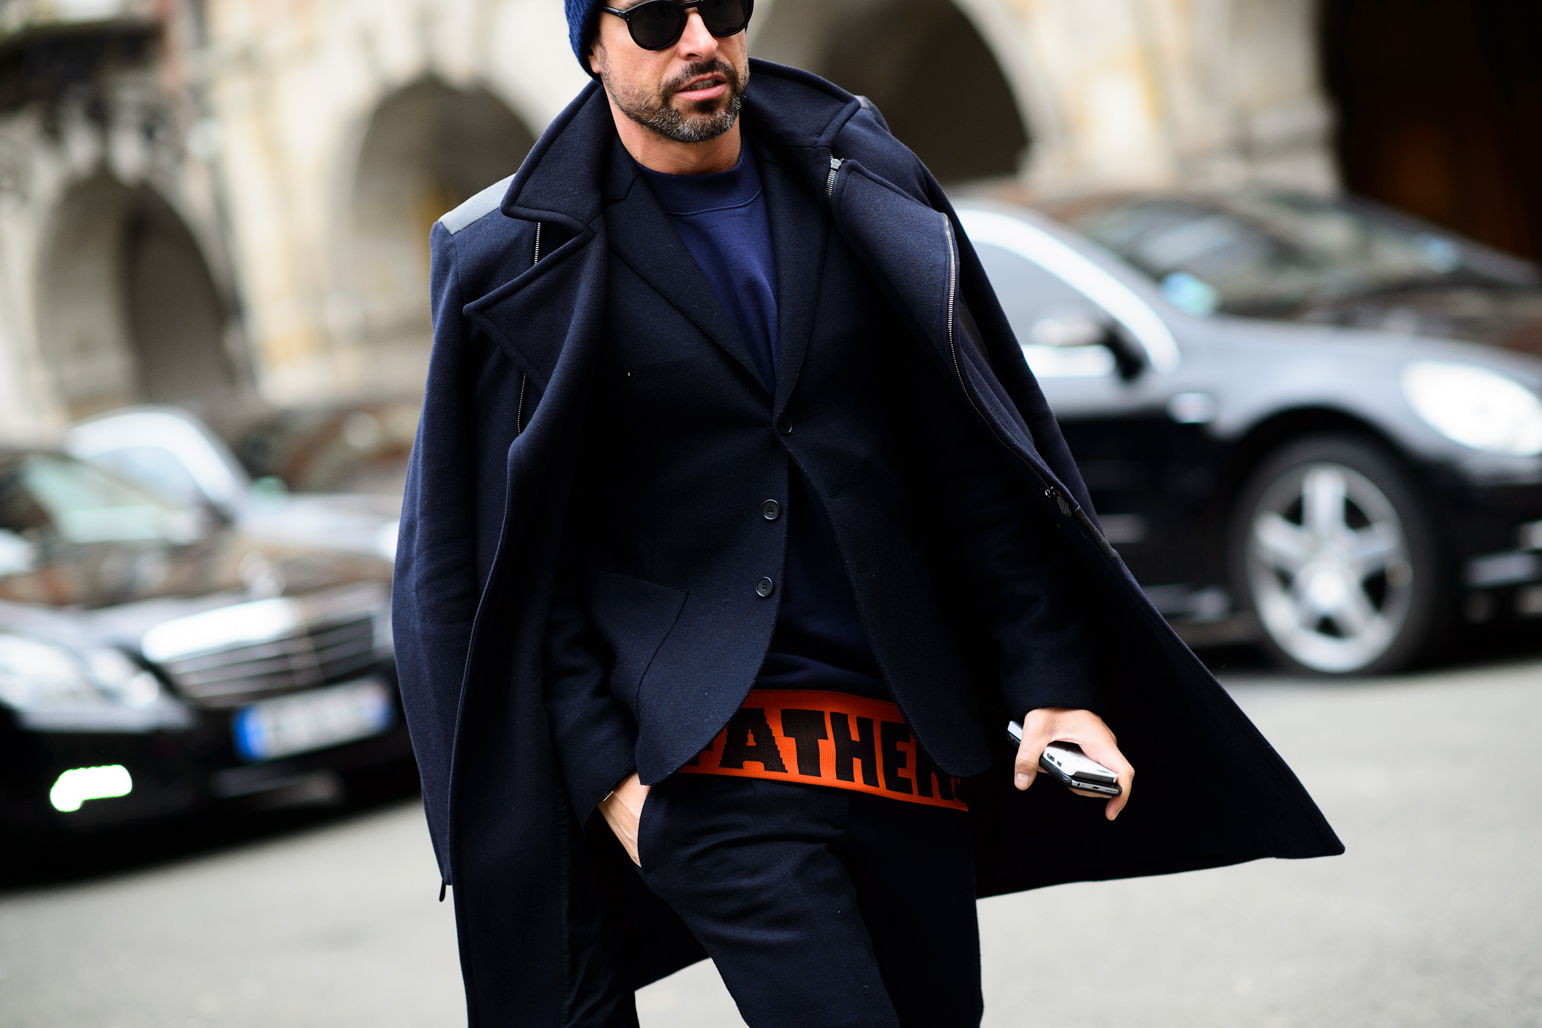 10 Reasons Why Fall/Winter Is The Best Season For Fashion